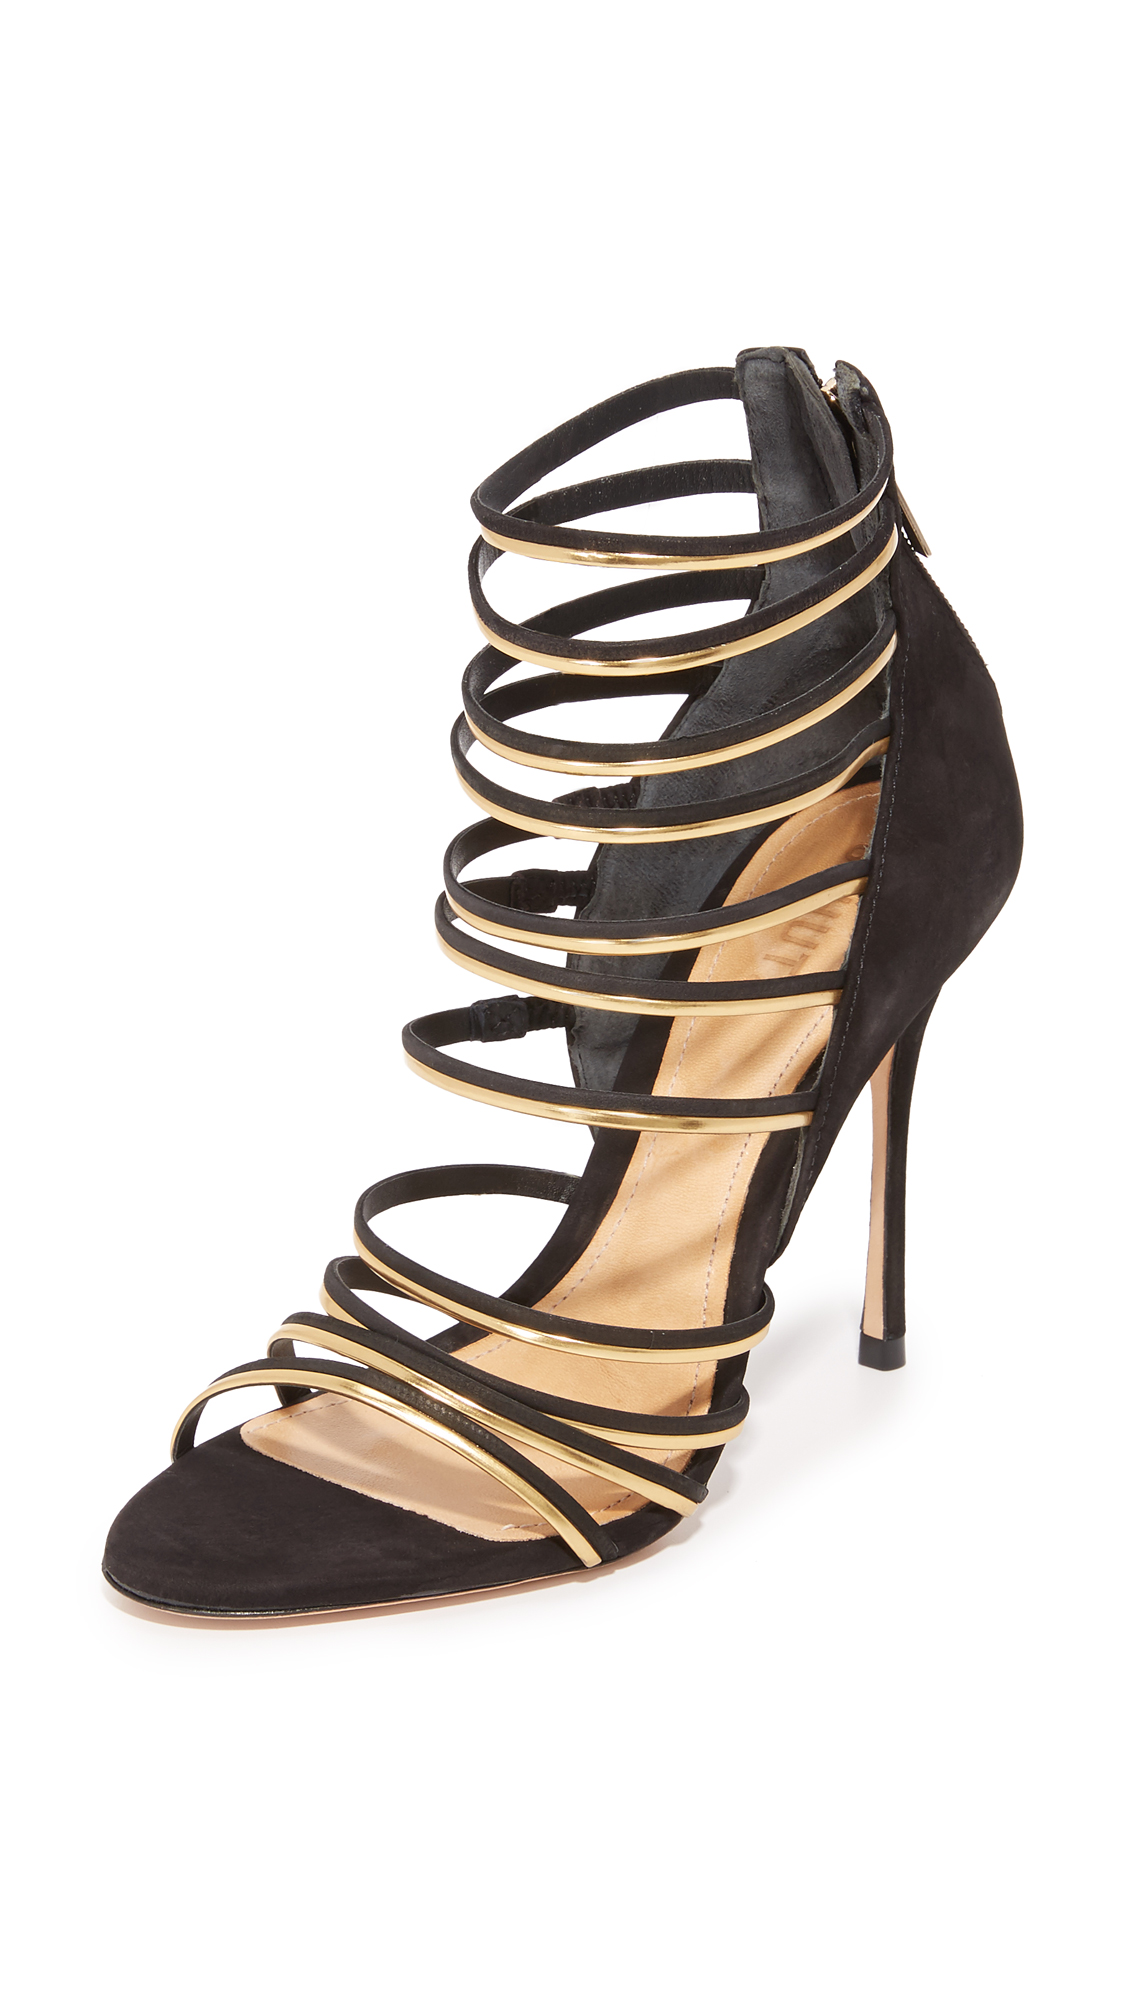 Schutz Myrna Sandals - Black/Ouro